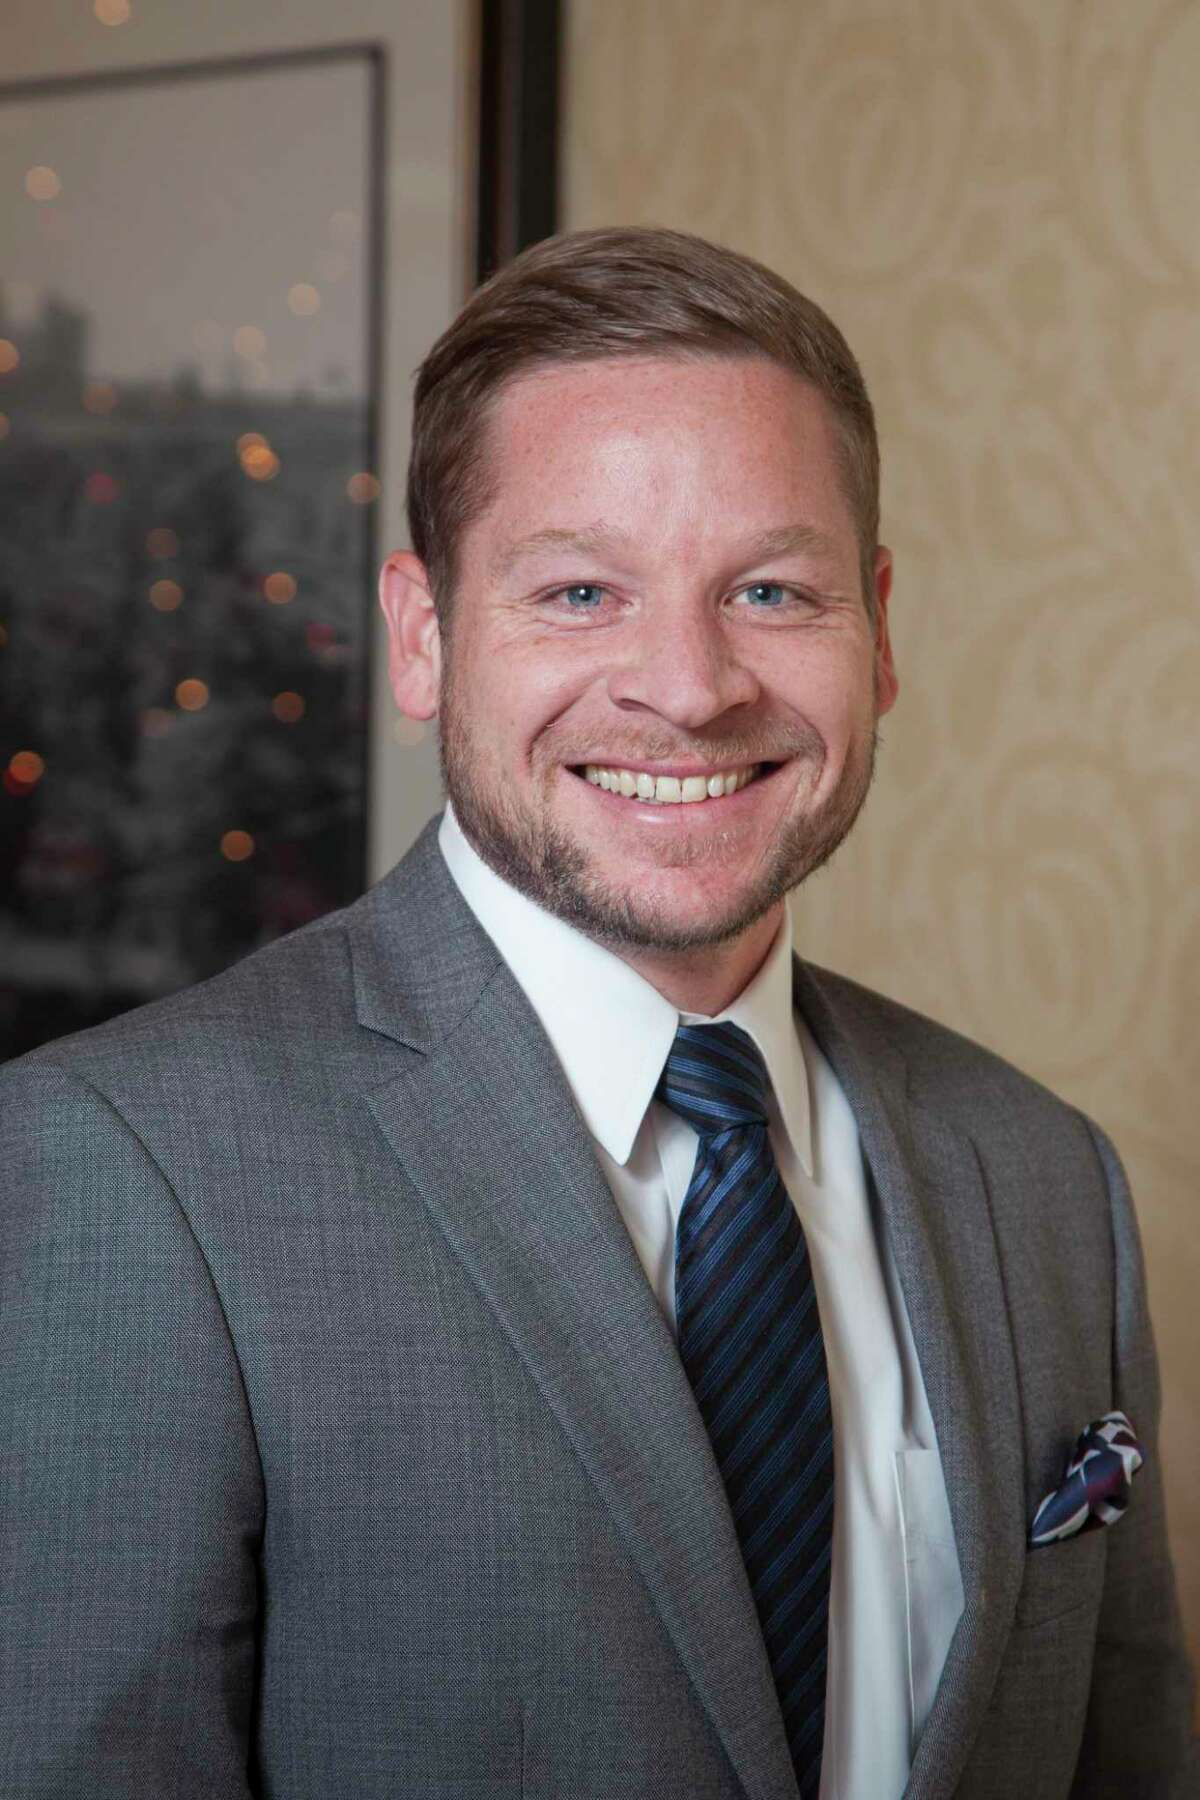 North Carolina native Kristopher Larson will take the place of longtime Central Houston President Robert Eury, who plans to retire later this year.